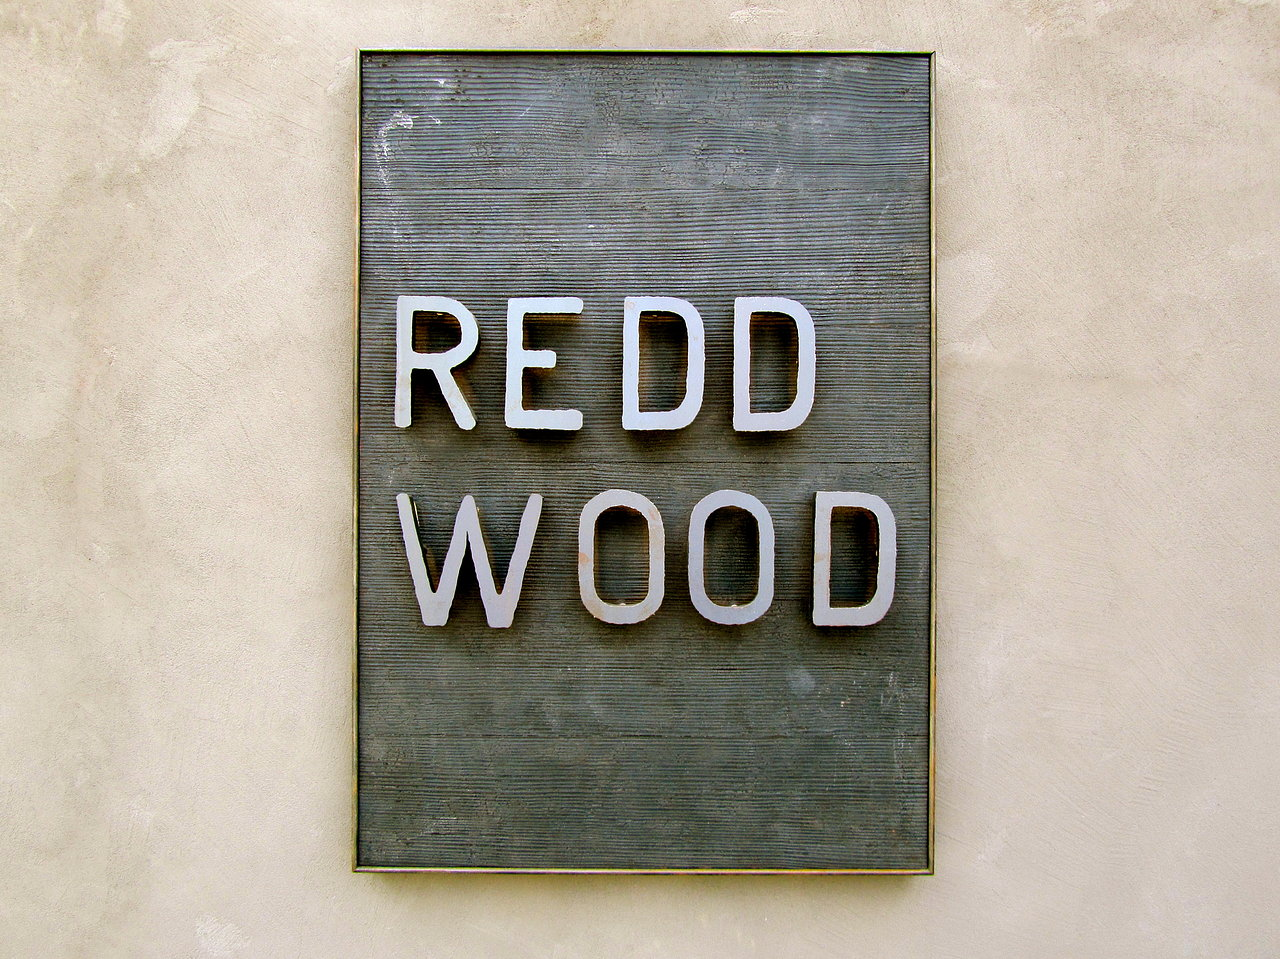 Redd Wood Restaurant